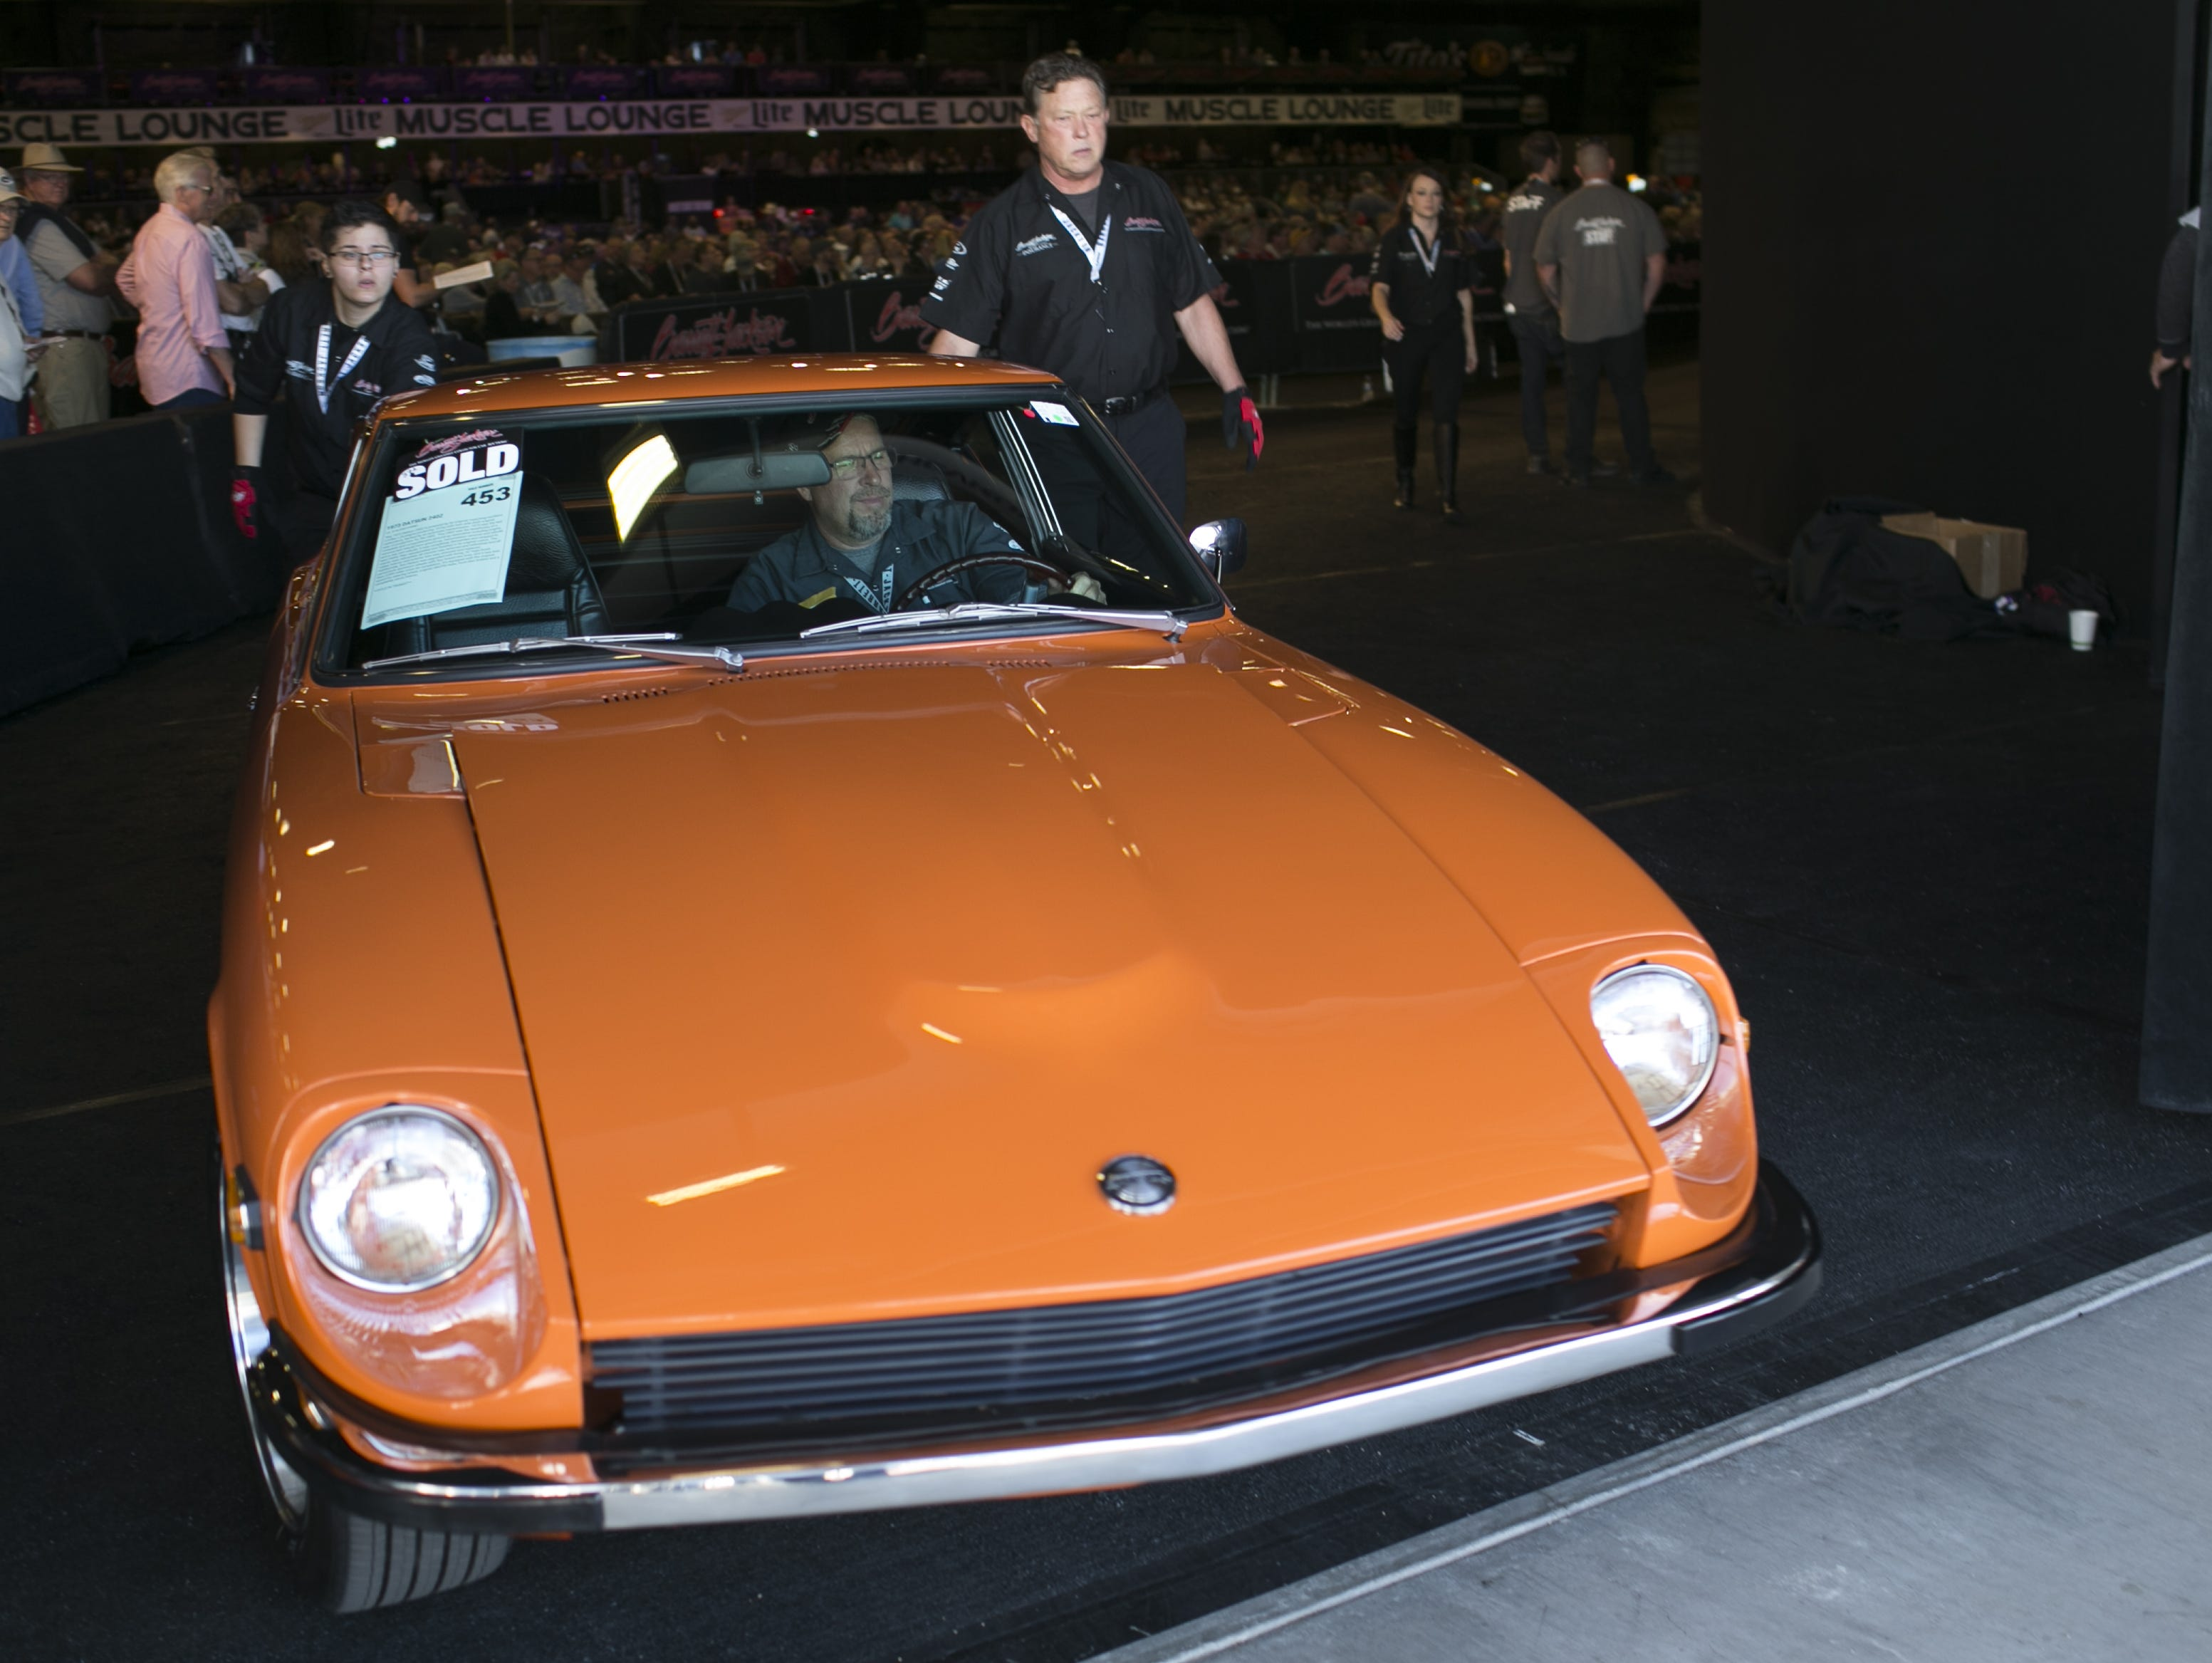 A 1973 Datsun 240Z is driven out of the auction block after being sold at the Barrett-Jackson Car Auction at WestWorld in Scottsdale, Arizona, on Jan. 16, 2019.